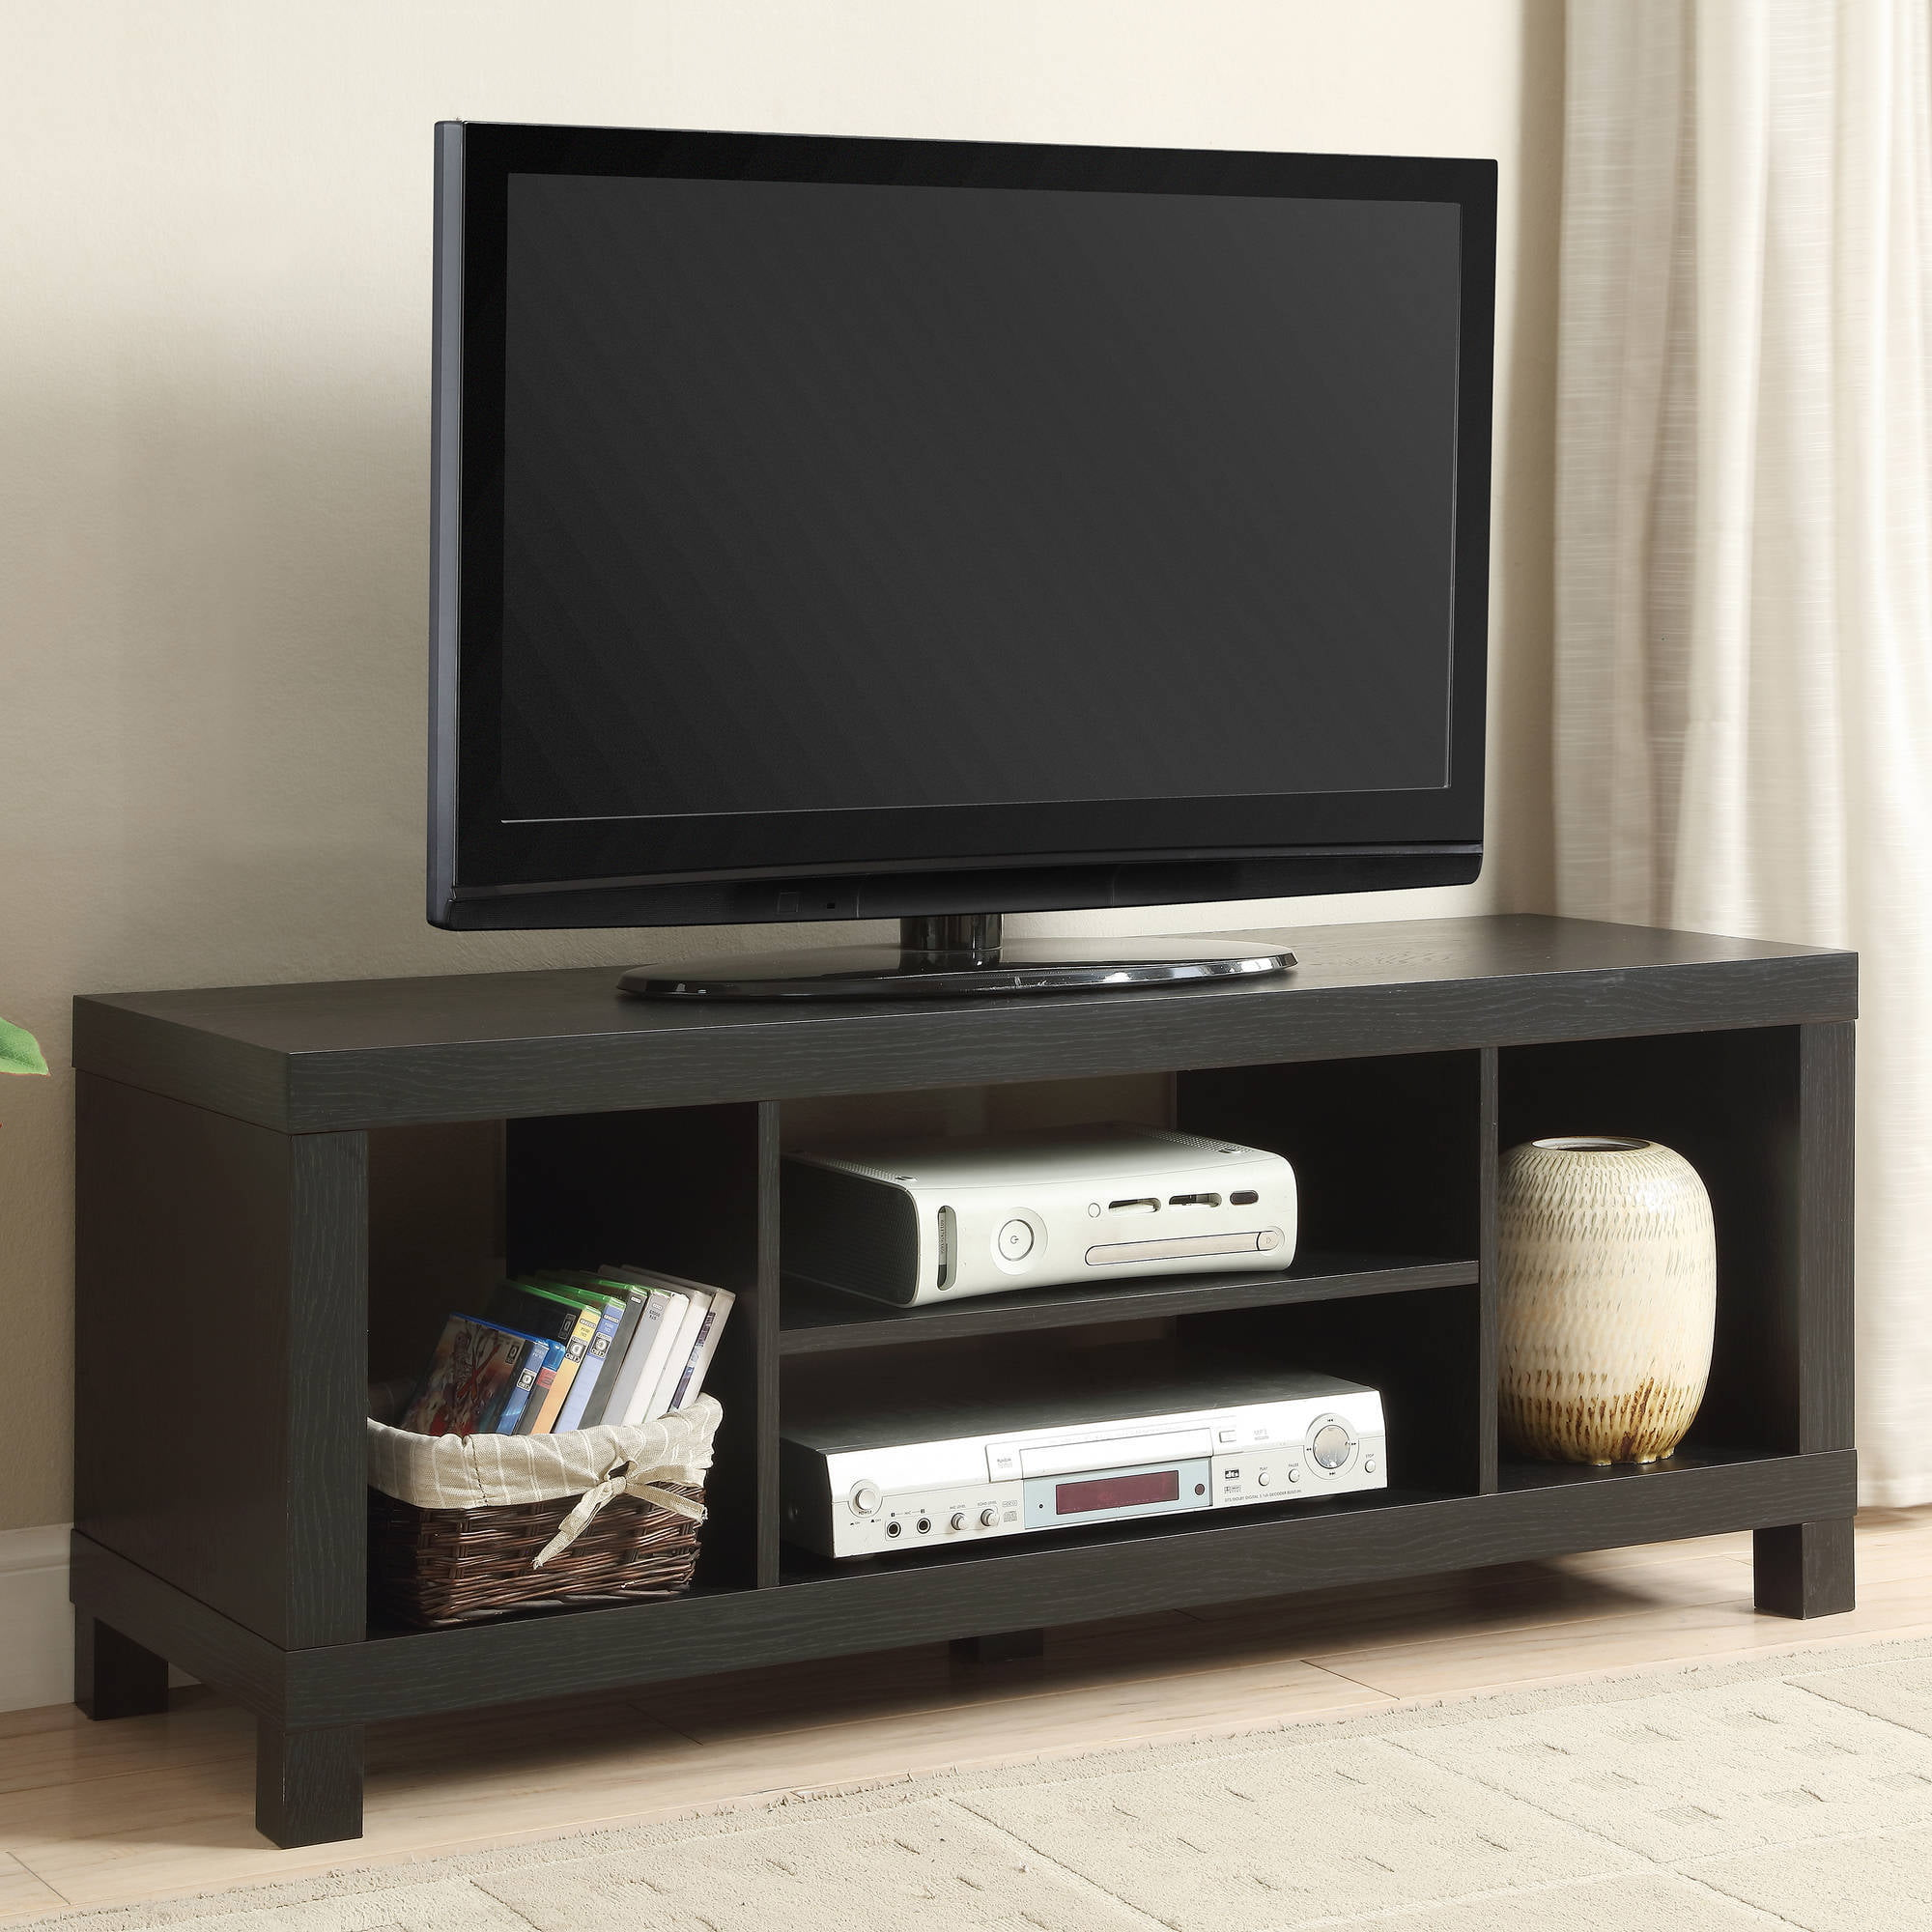 Mainstays TV Stand for TVs up to 42\